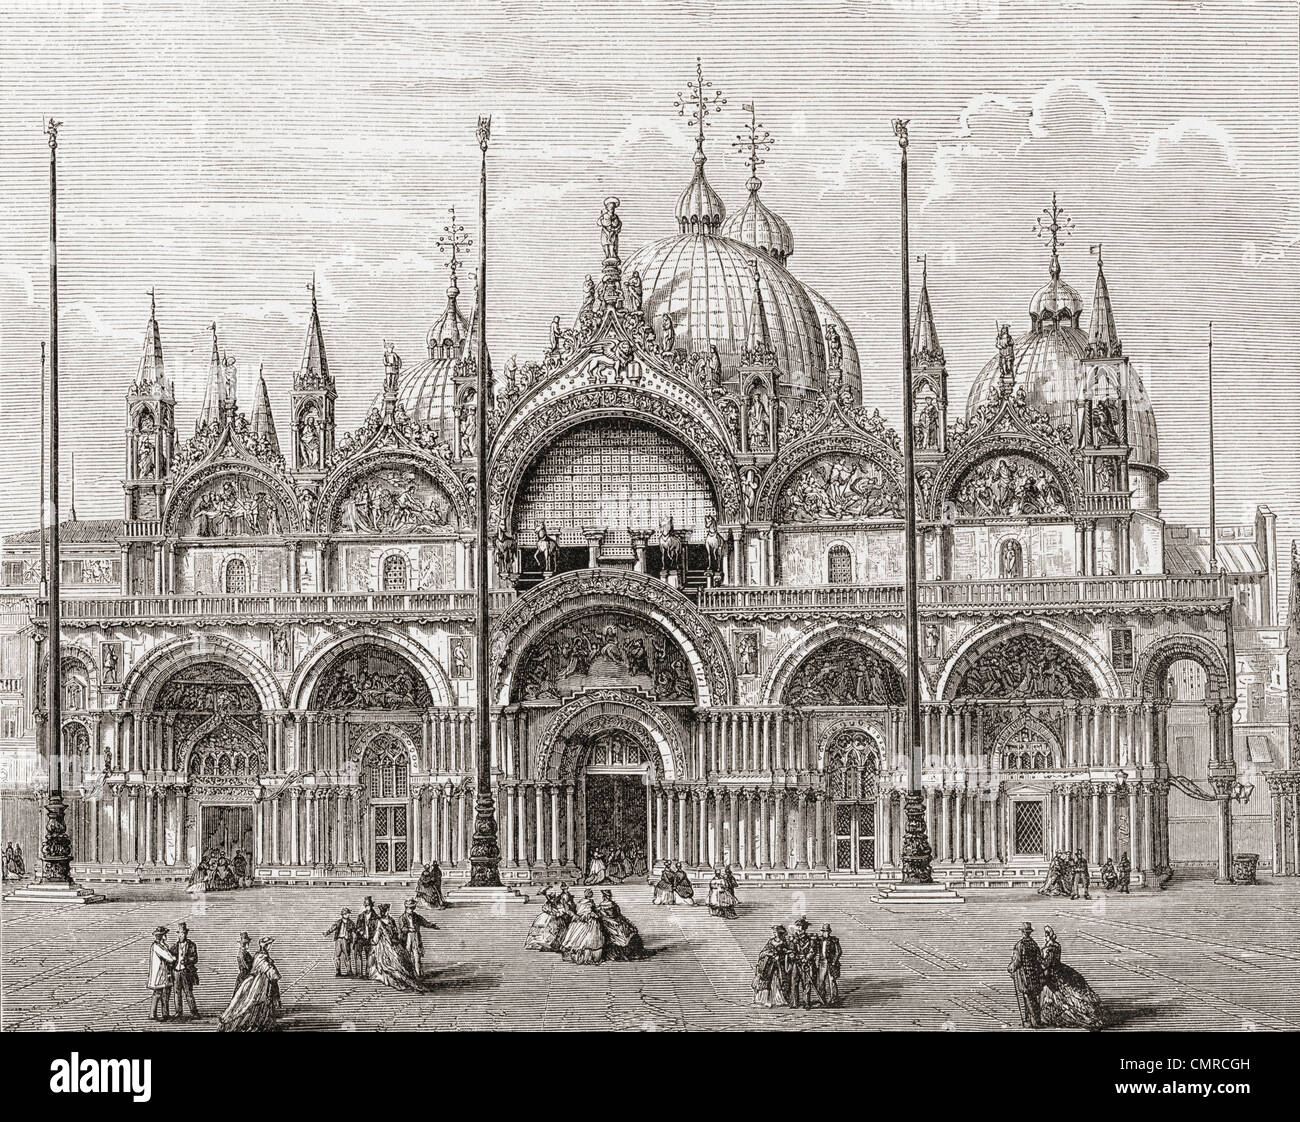 The Patriarchal Cathedral Basilica of Saint Mark, or Saint Mark's Basilica, Venice, Italy in the late 19th century. - Stock Image